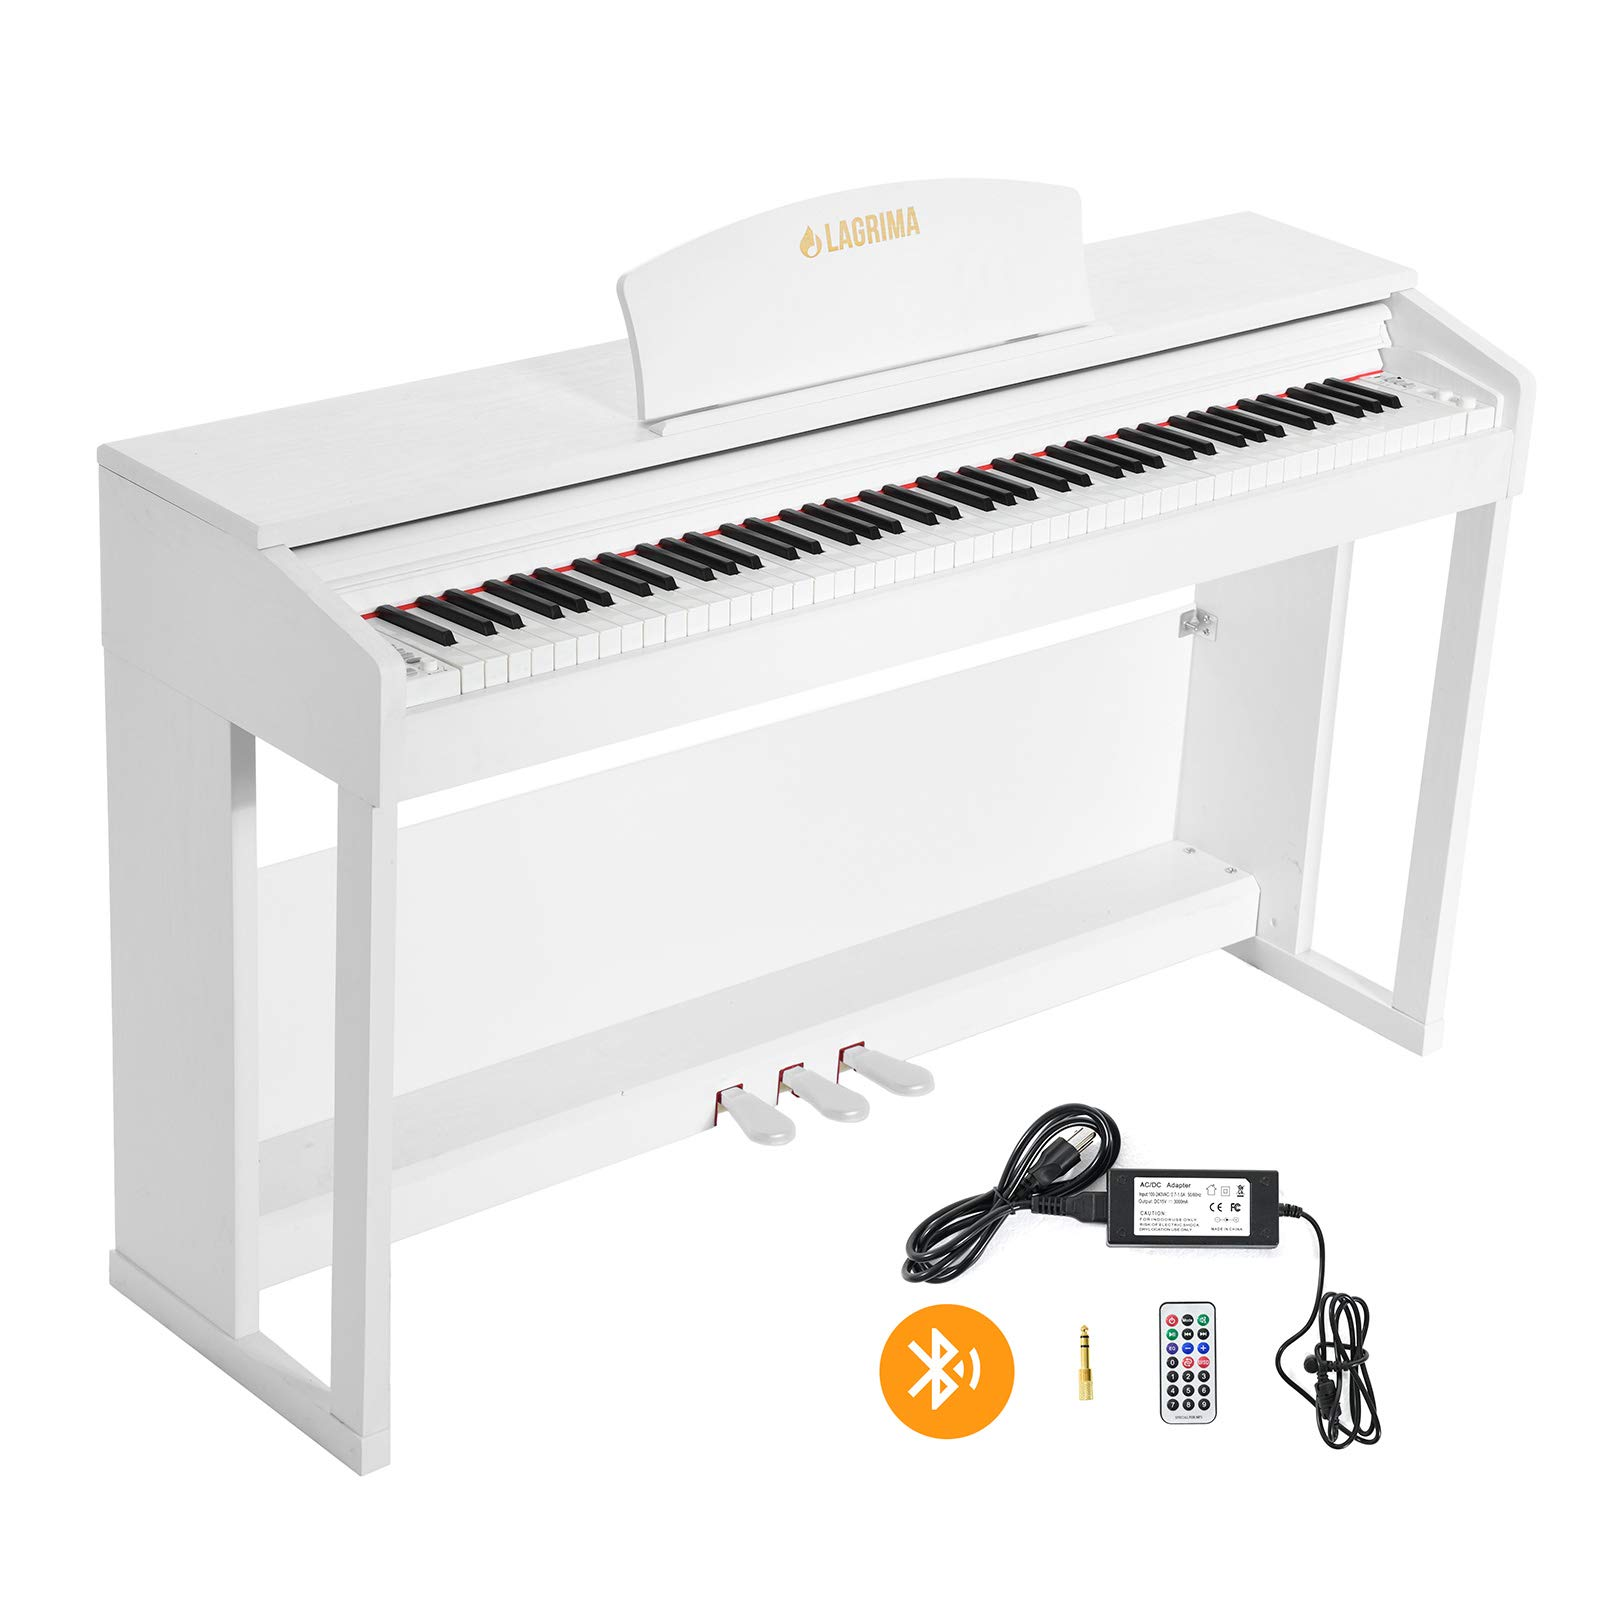 LAGRIMA LG-803 88-Key Beginner Digital Piano with Full-Size Weighted Keys | Muti-functional Piano with 3 Pedals and Bluetooth | Multi-tone Selection - White by LAGRIMA